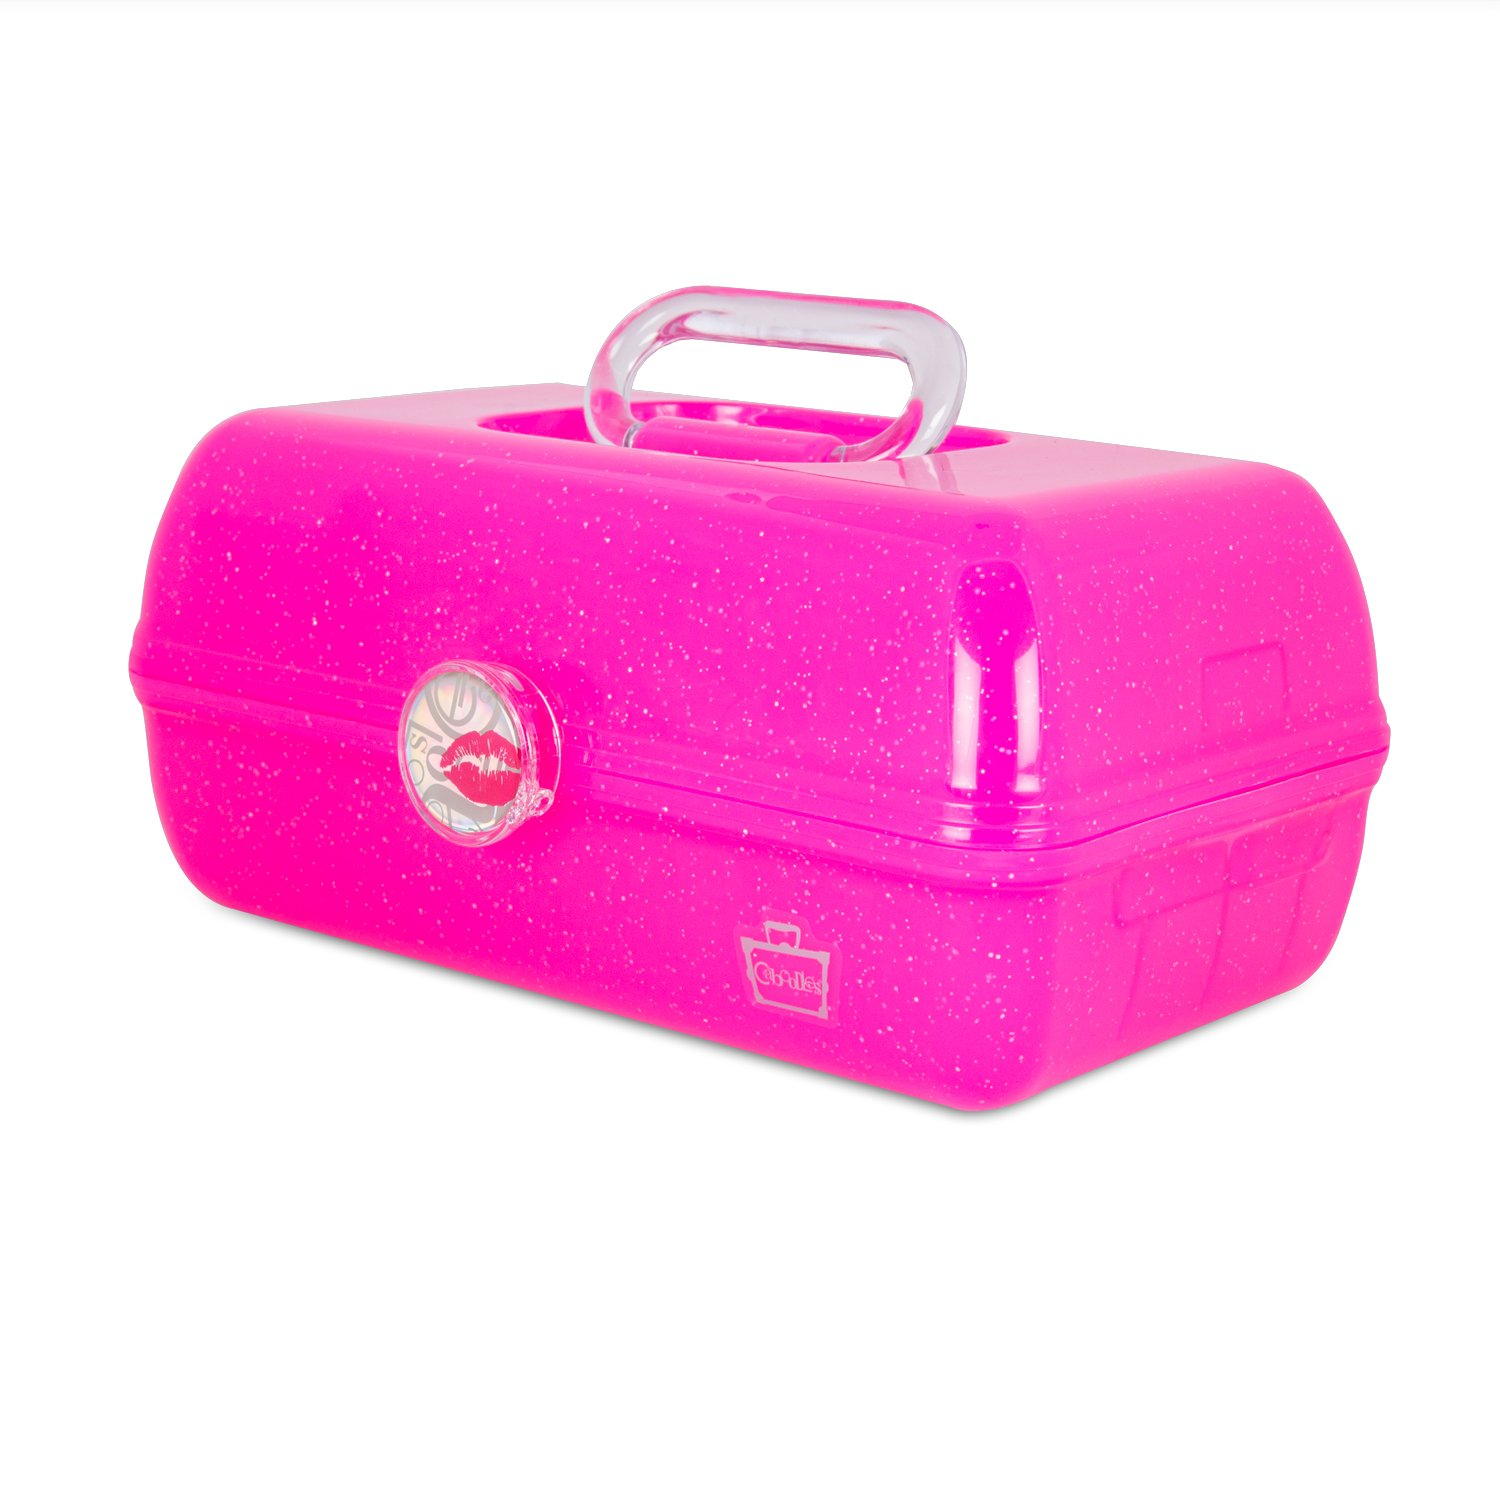 Caboodles On the Go Girl Classic Case, Purple, 2.4 Pound 562600